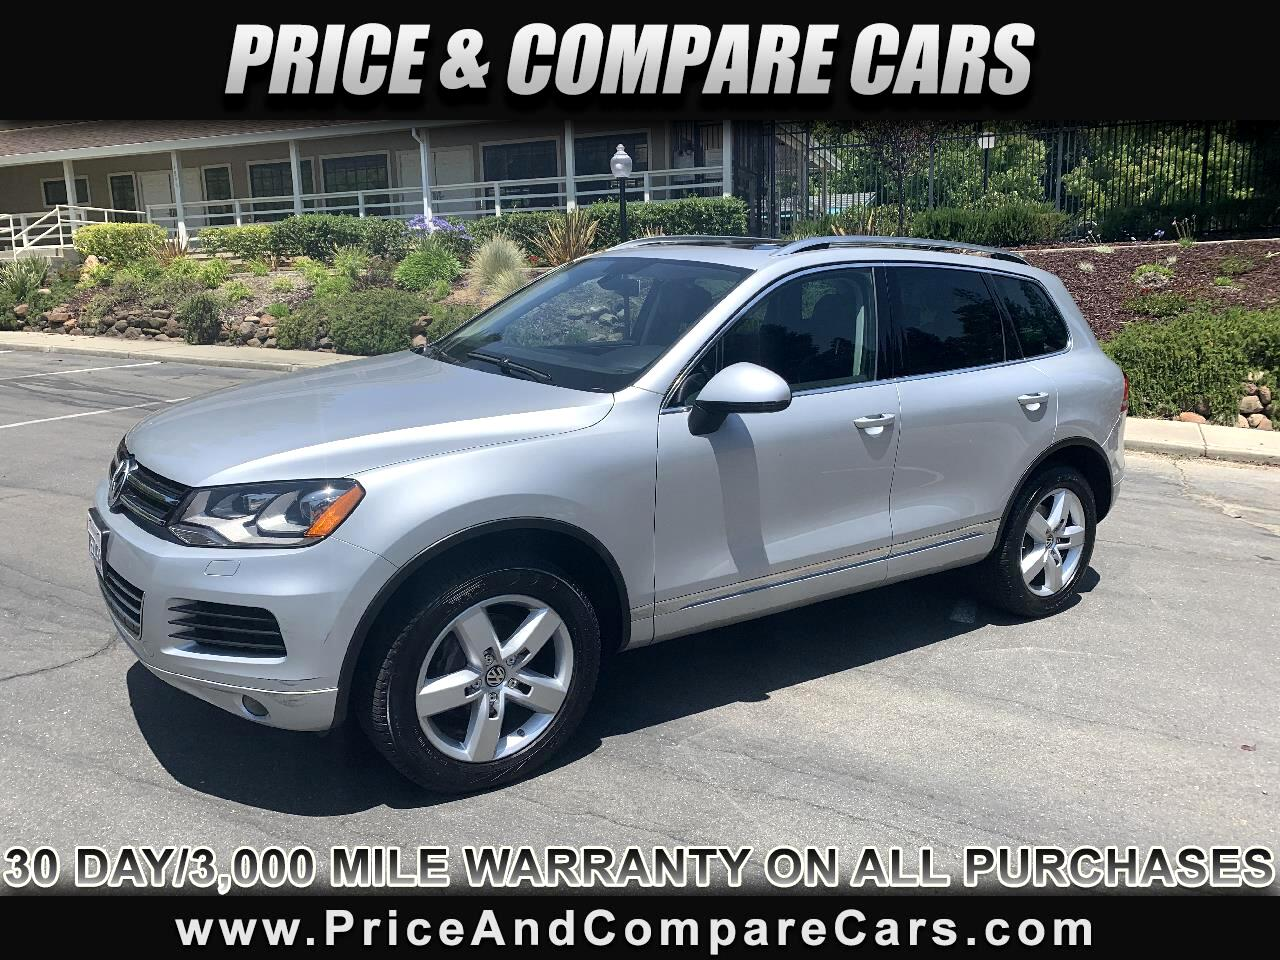 2014 Volkswagen Touareg TDI AWD LUXURY PACKAGE